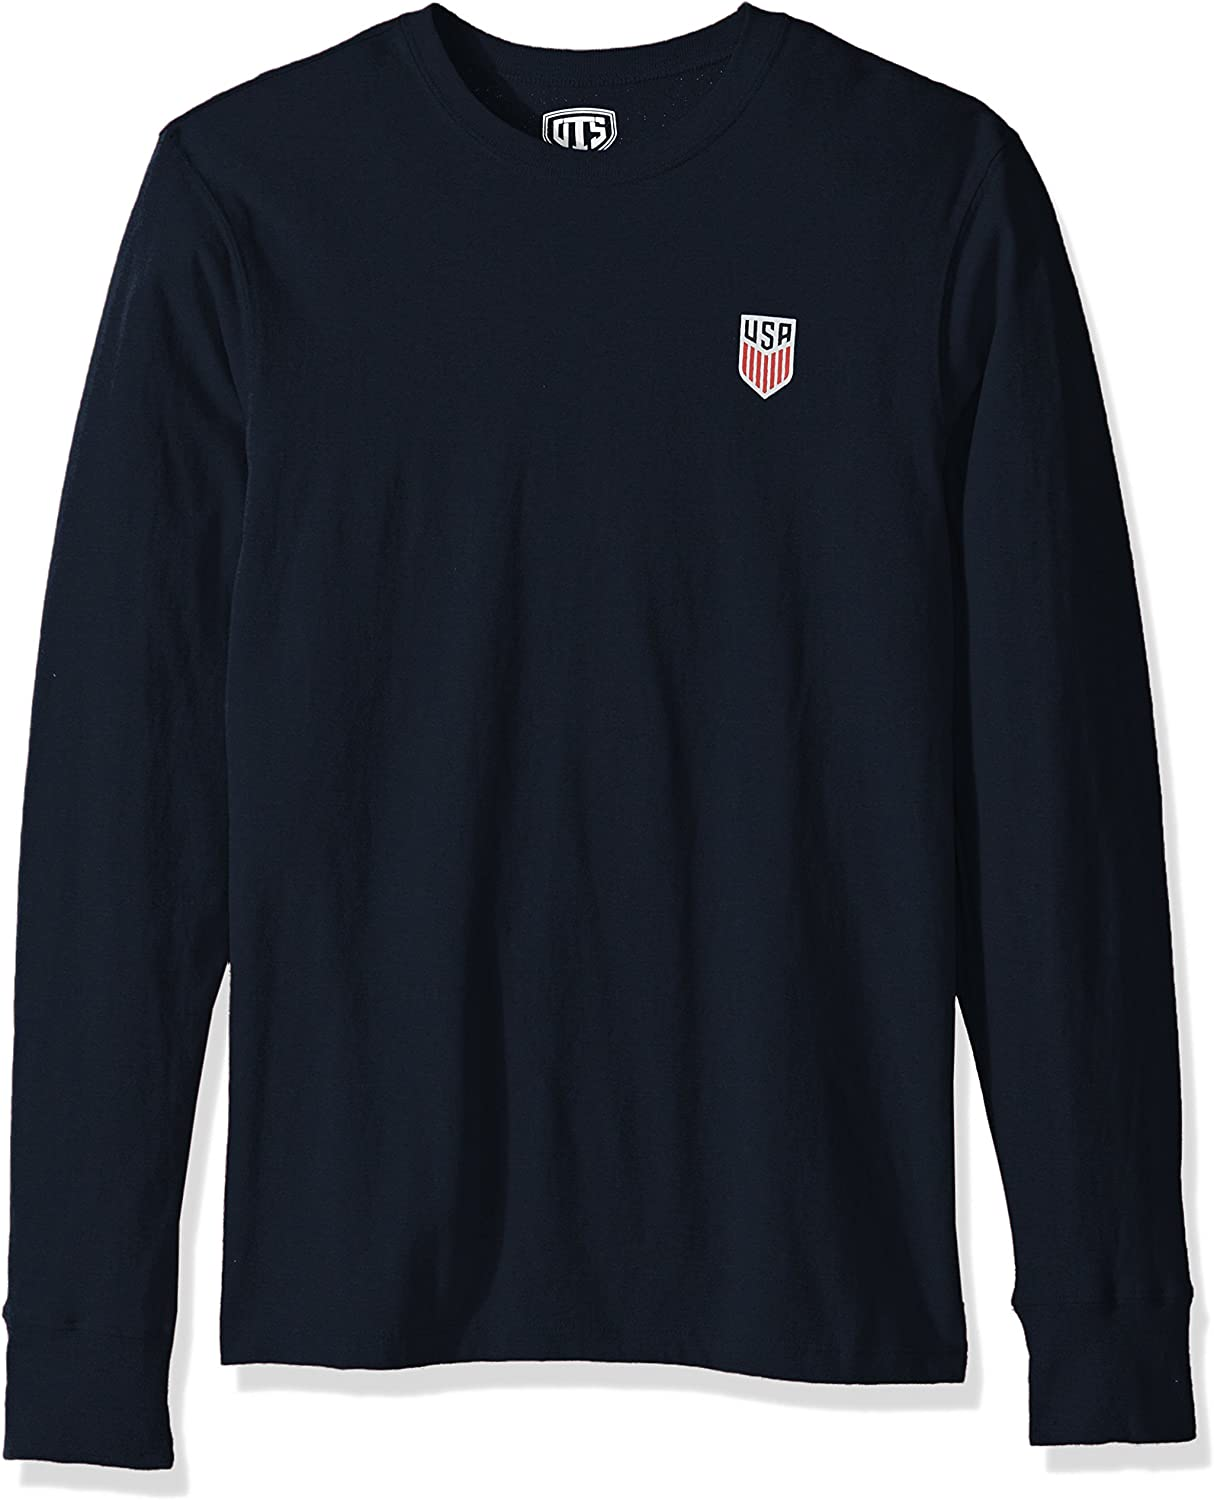 World Cup Soccer United States Men's OTS Rival Long Sleeve LCCB Tee